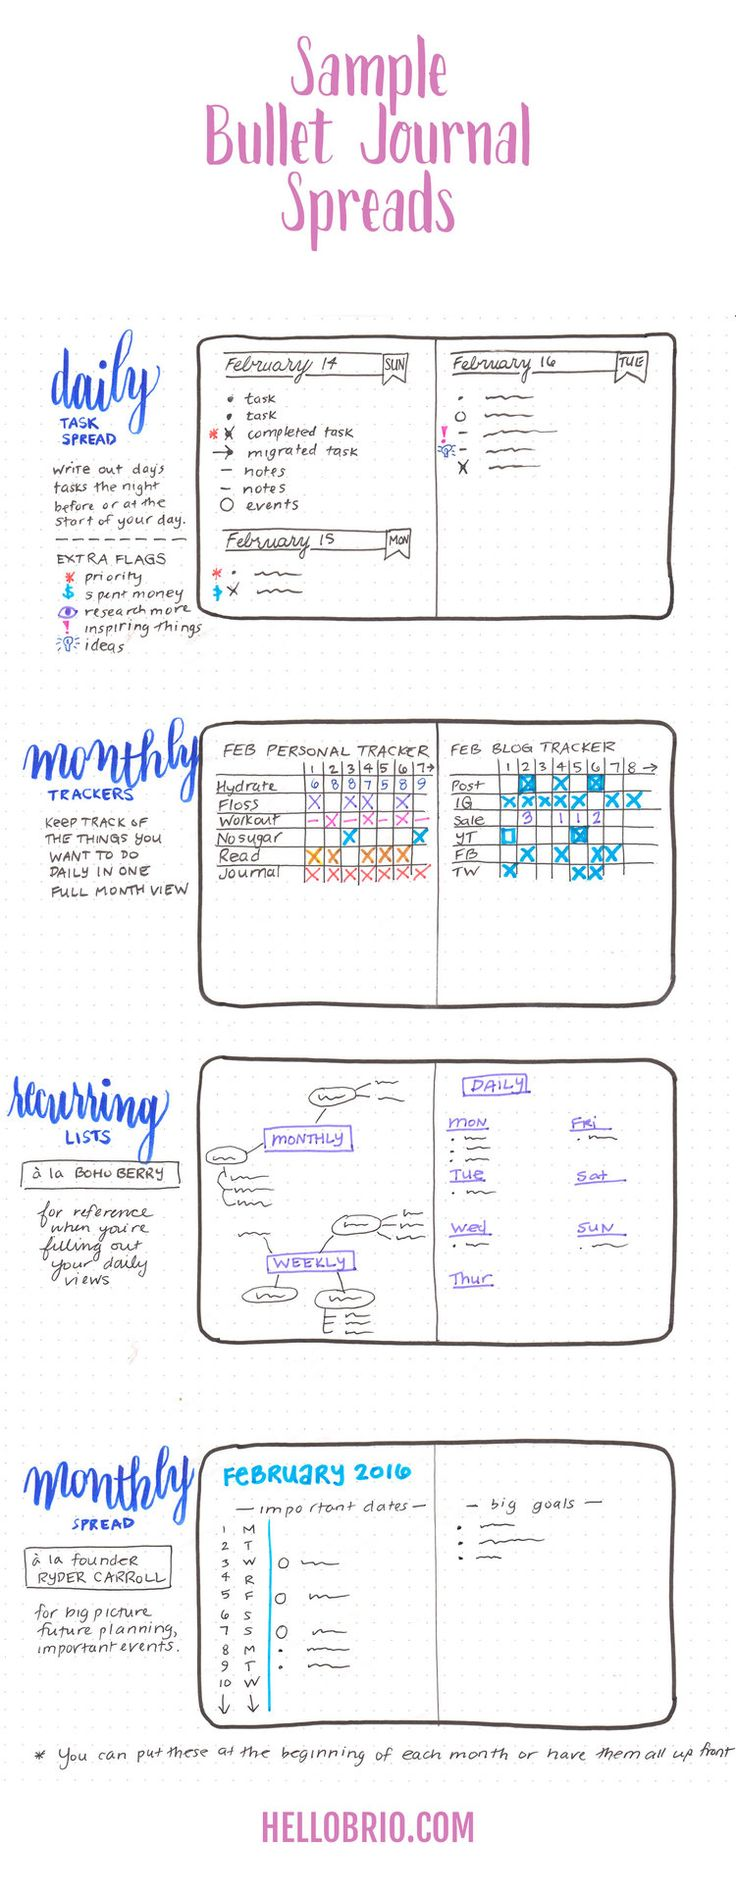 Bullet Journal spread examples